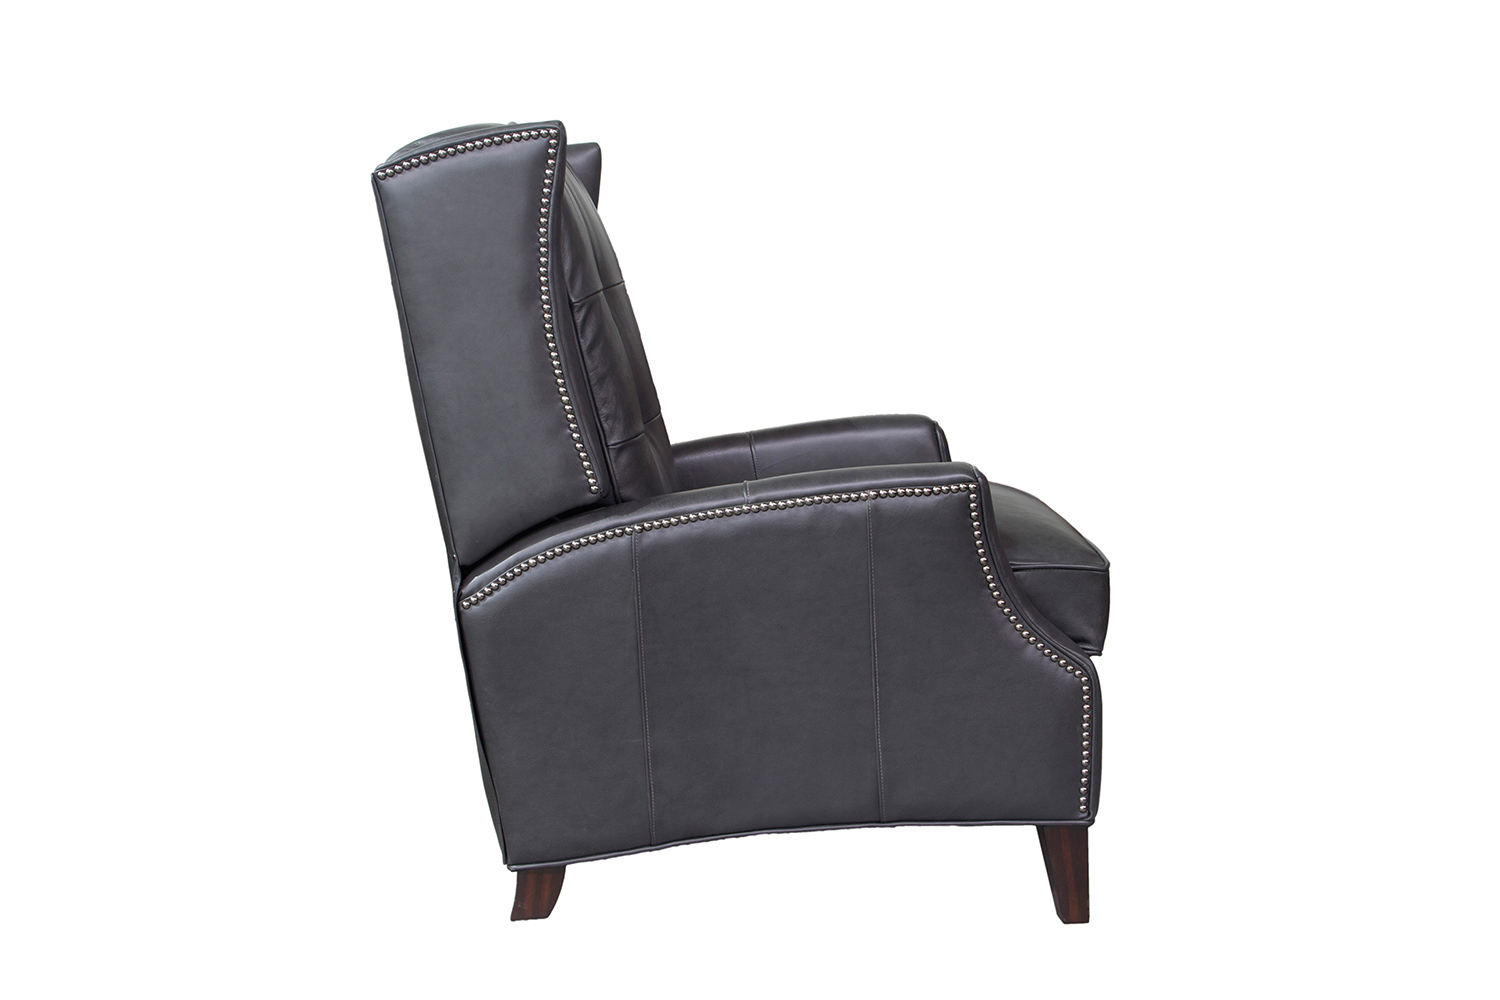 Barcalounger Lincoln Recliner Chair - Shoreham Gray/All Leather